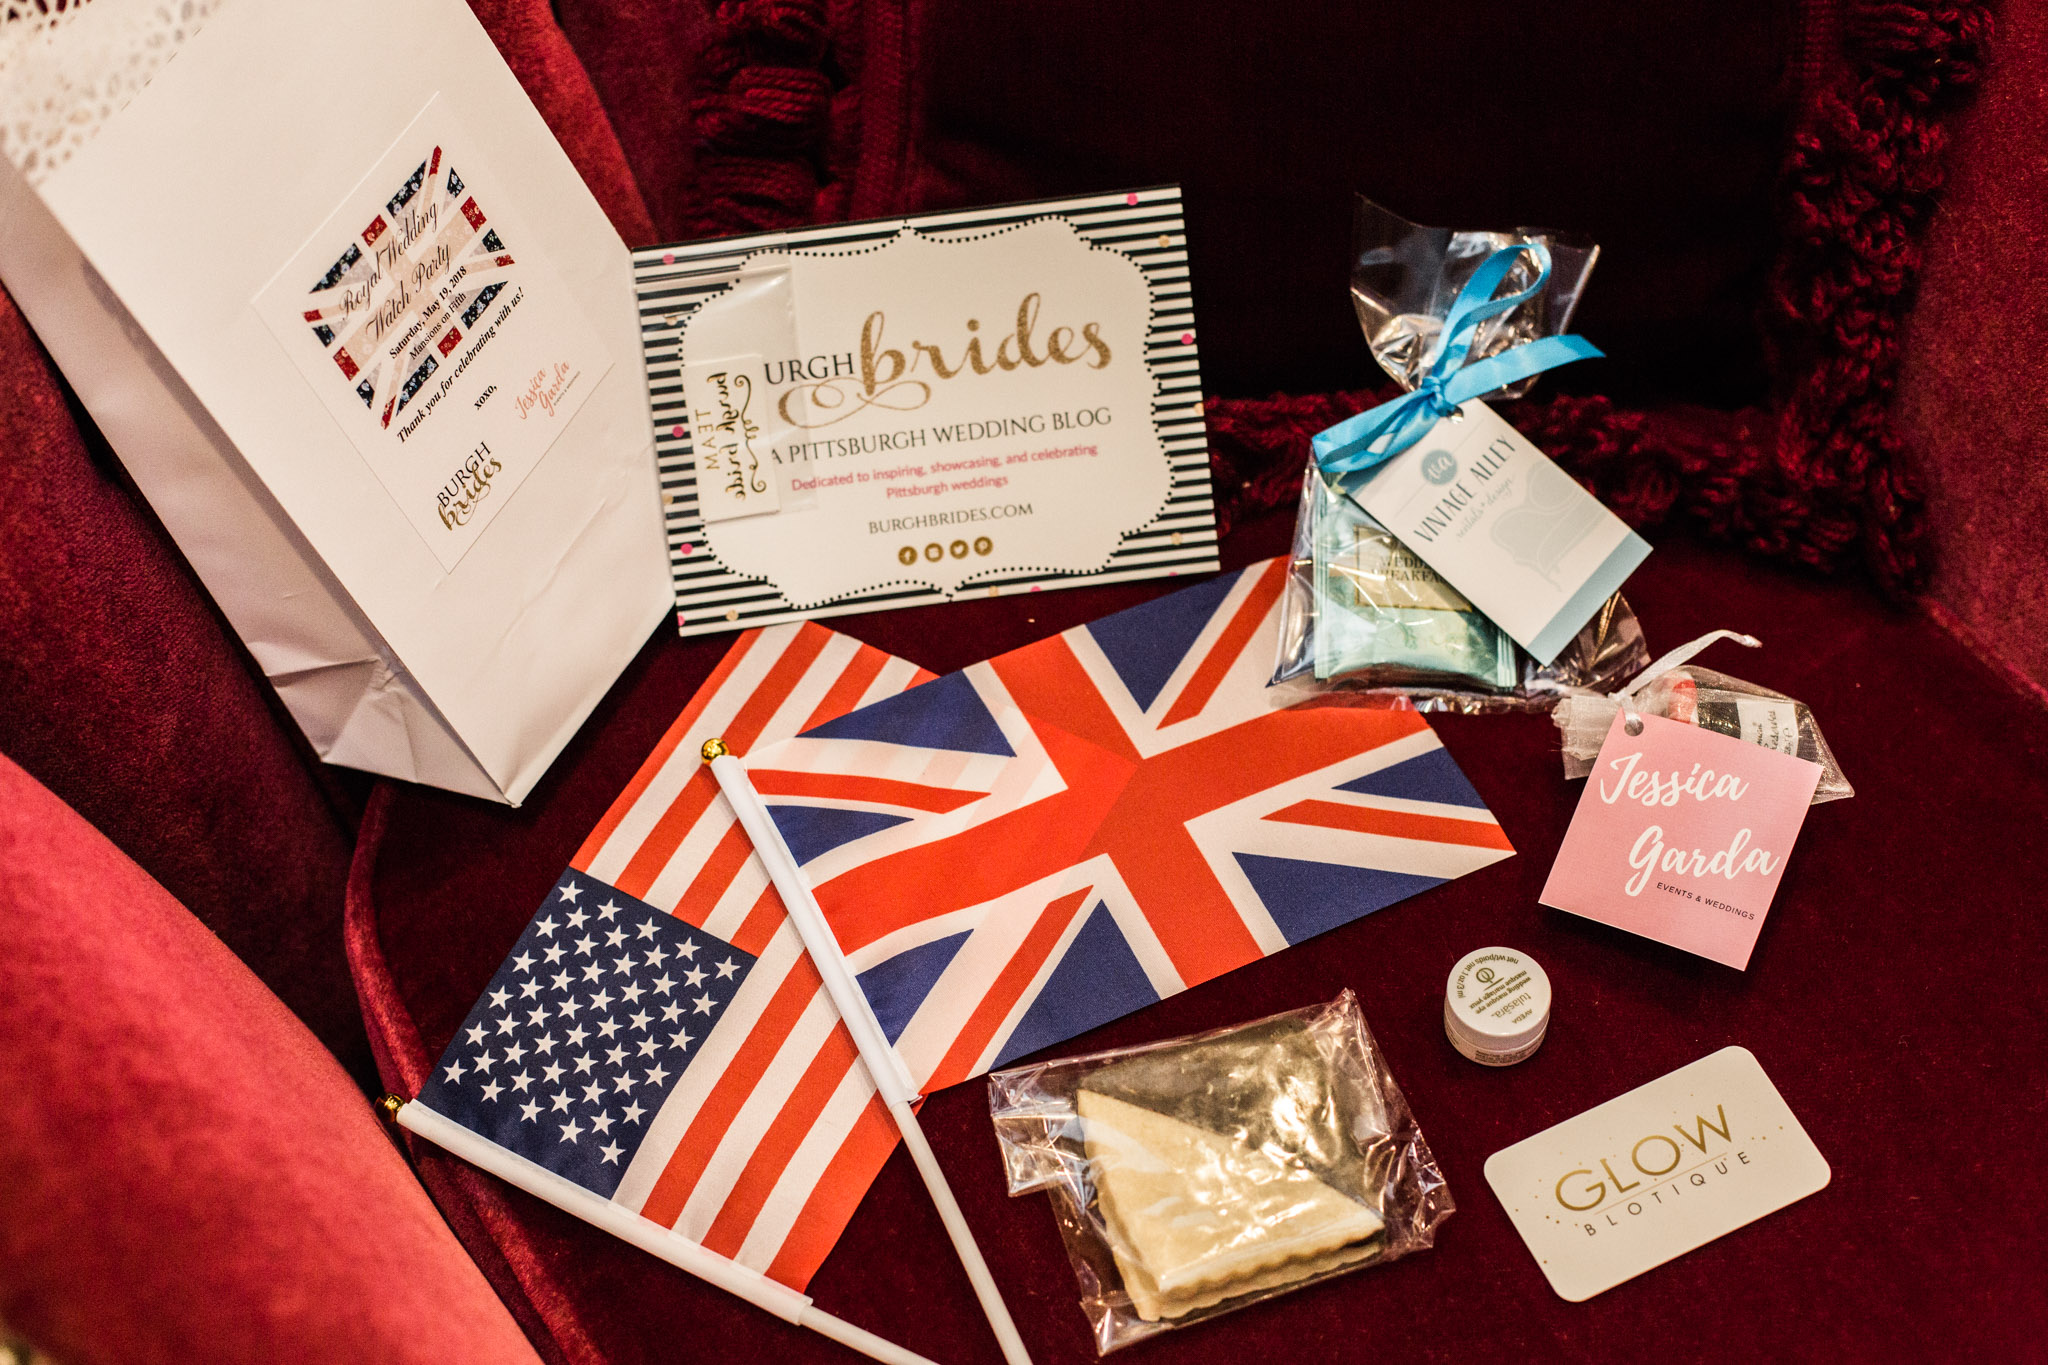 Pittsburgh Wedding Planner - Royal Wedding Watch Party - British themed favor bag